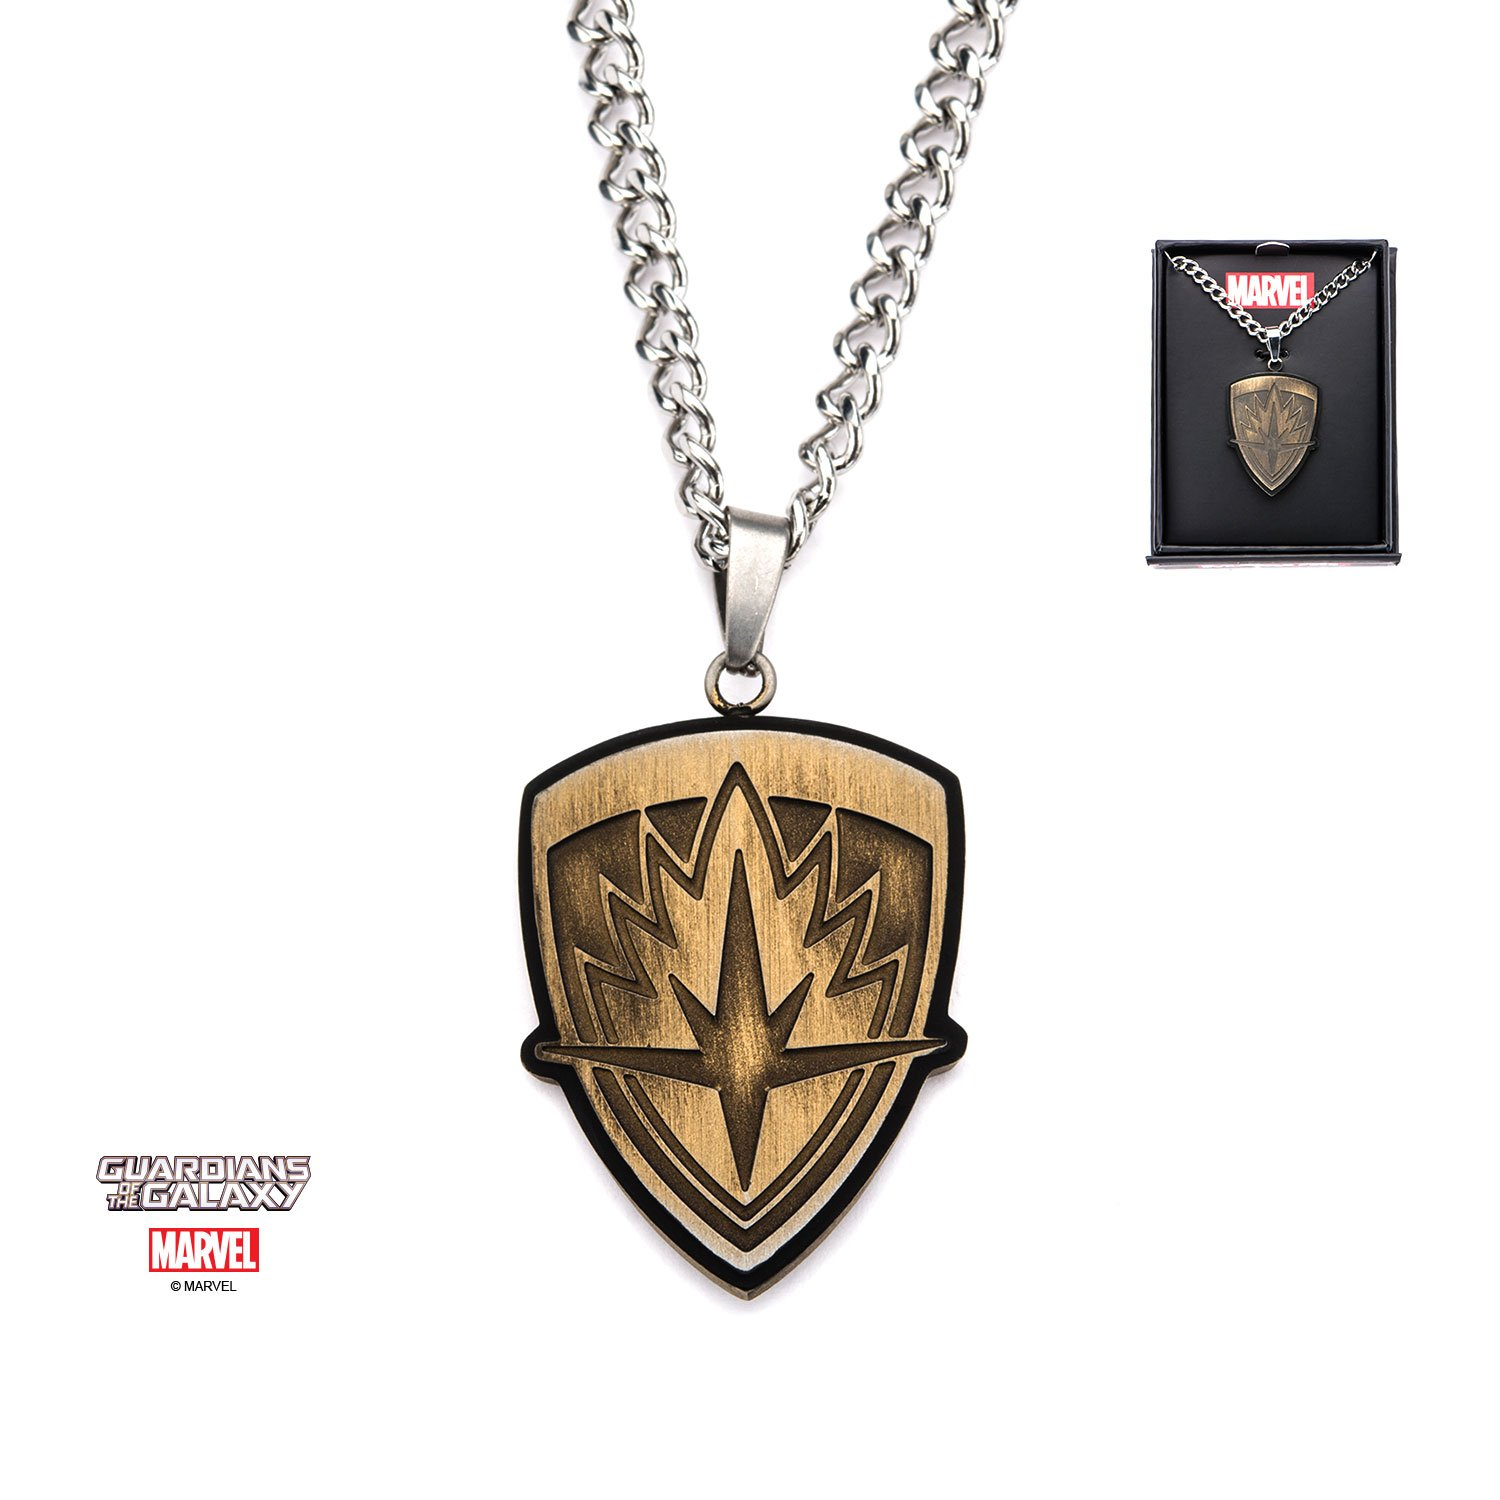 Guardians of the Galaxy Stainless Steel Pendant Necklace - DeluxeAdultCostumes.com